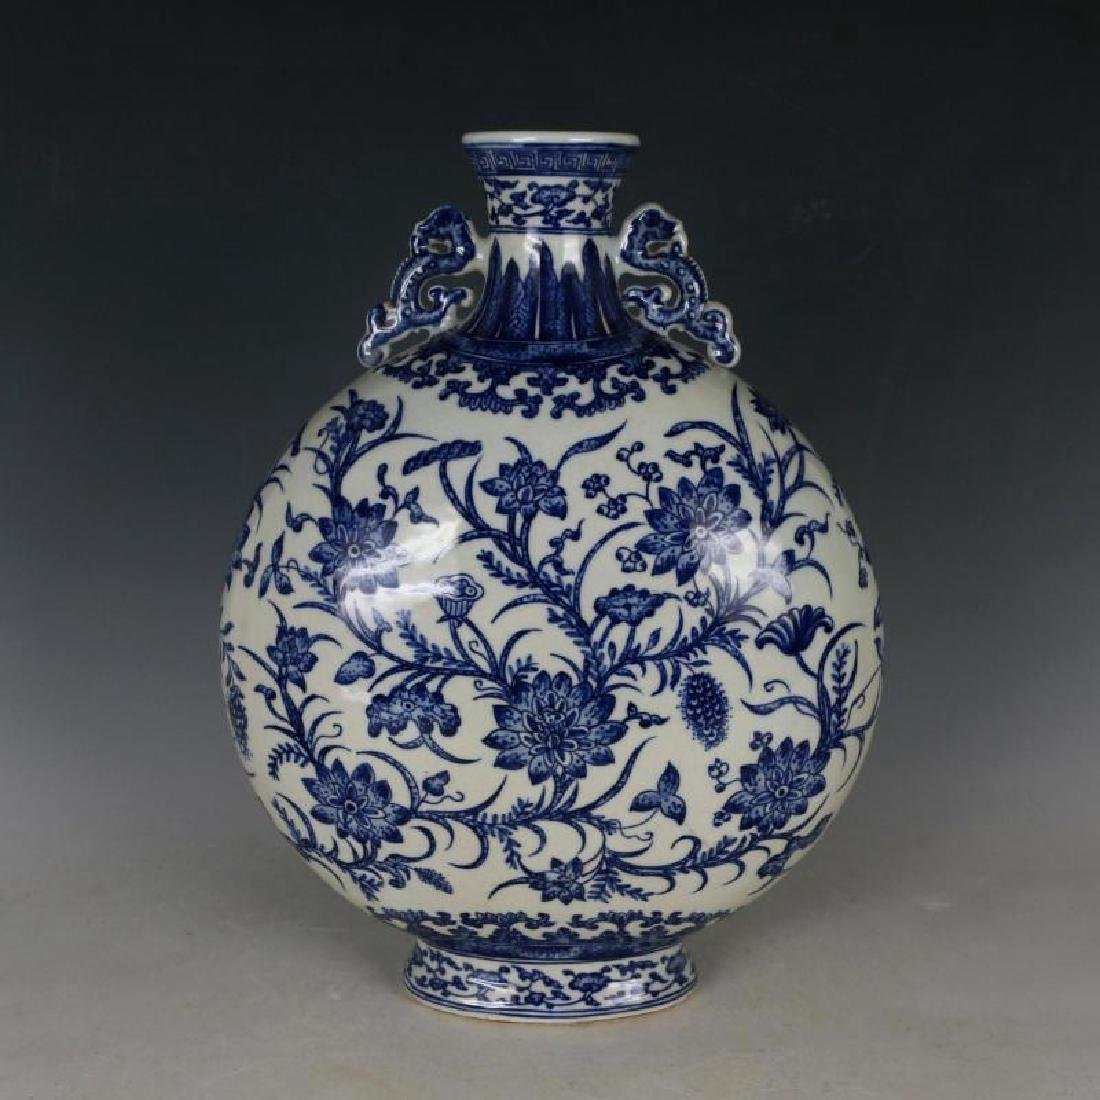 A Big Blue and White Porcelain Flat Bottle